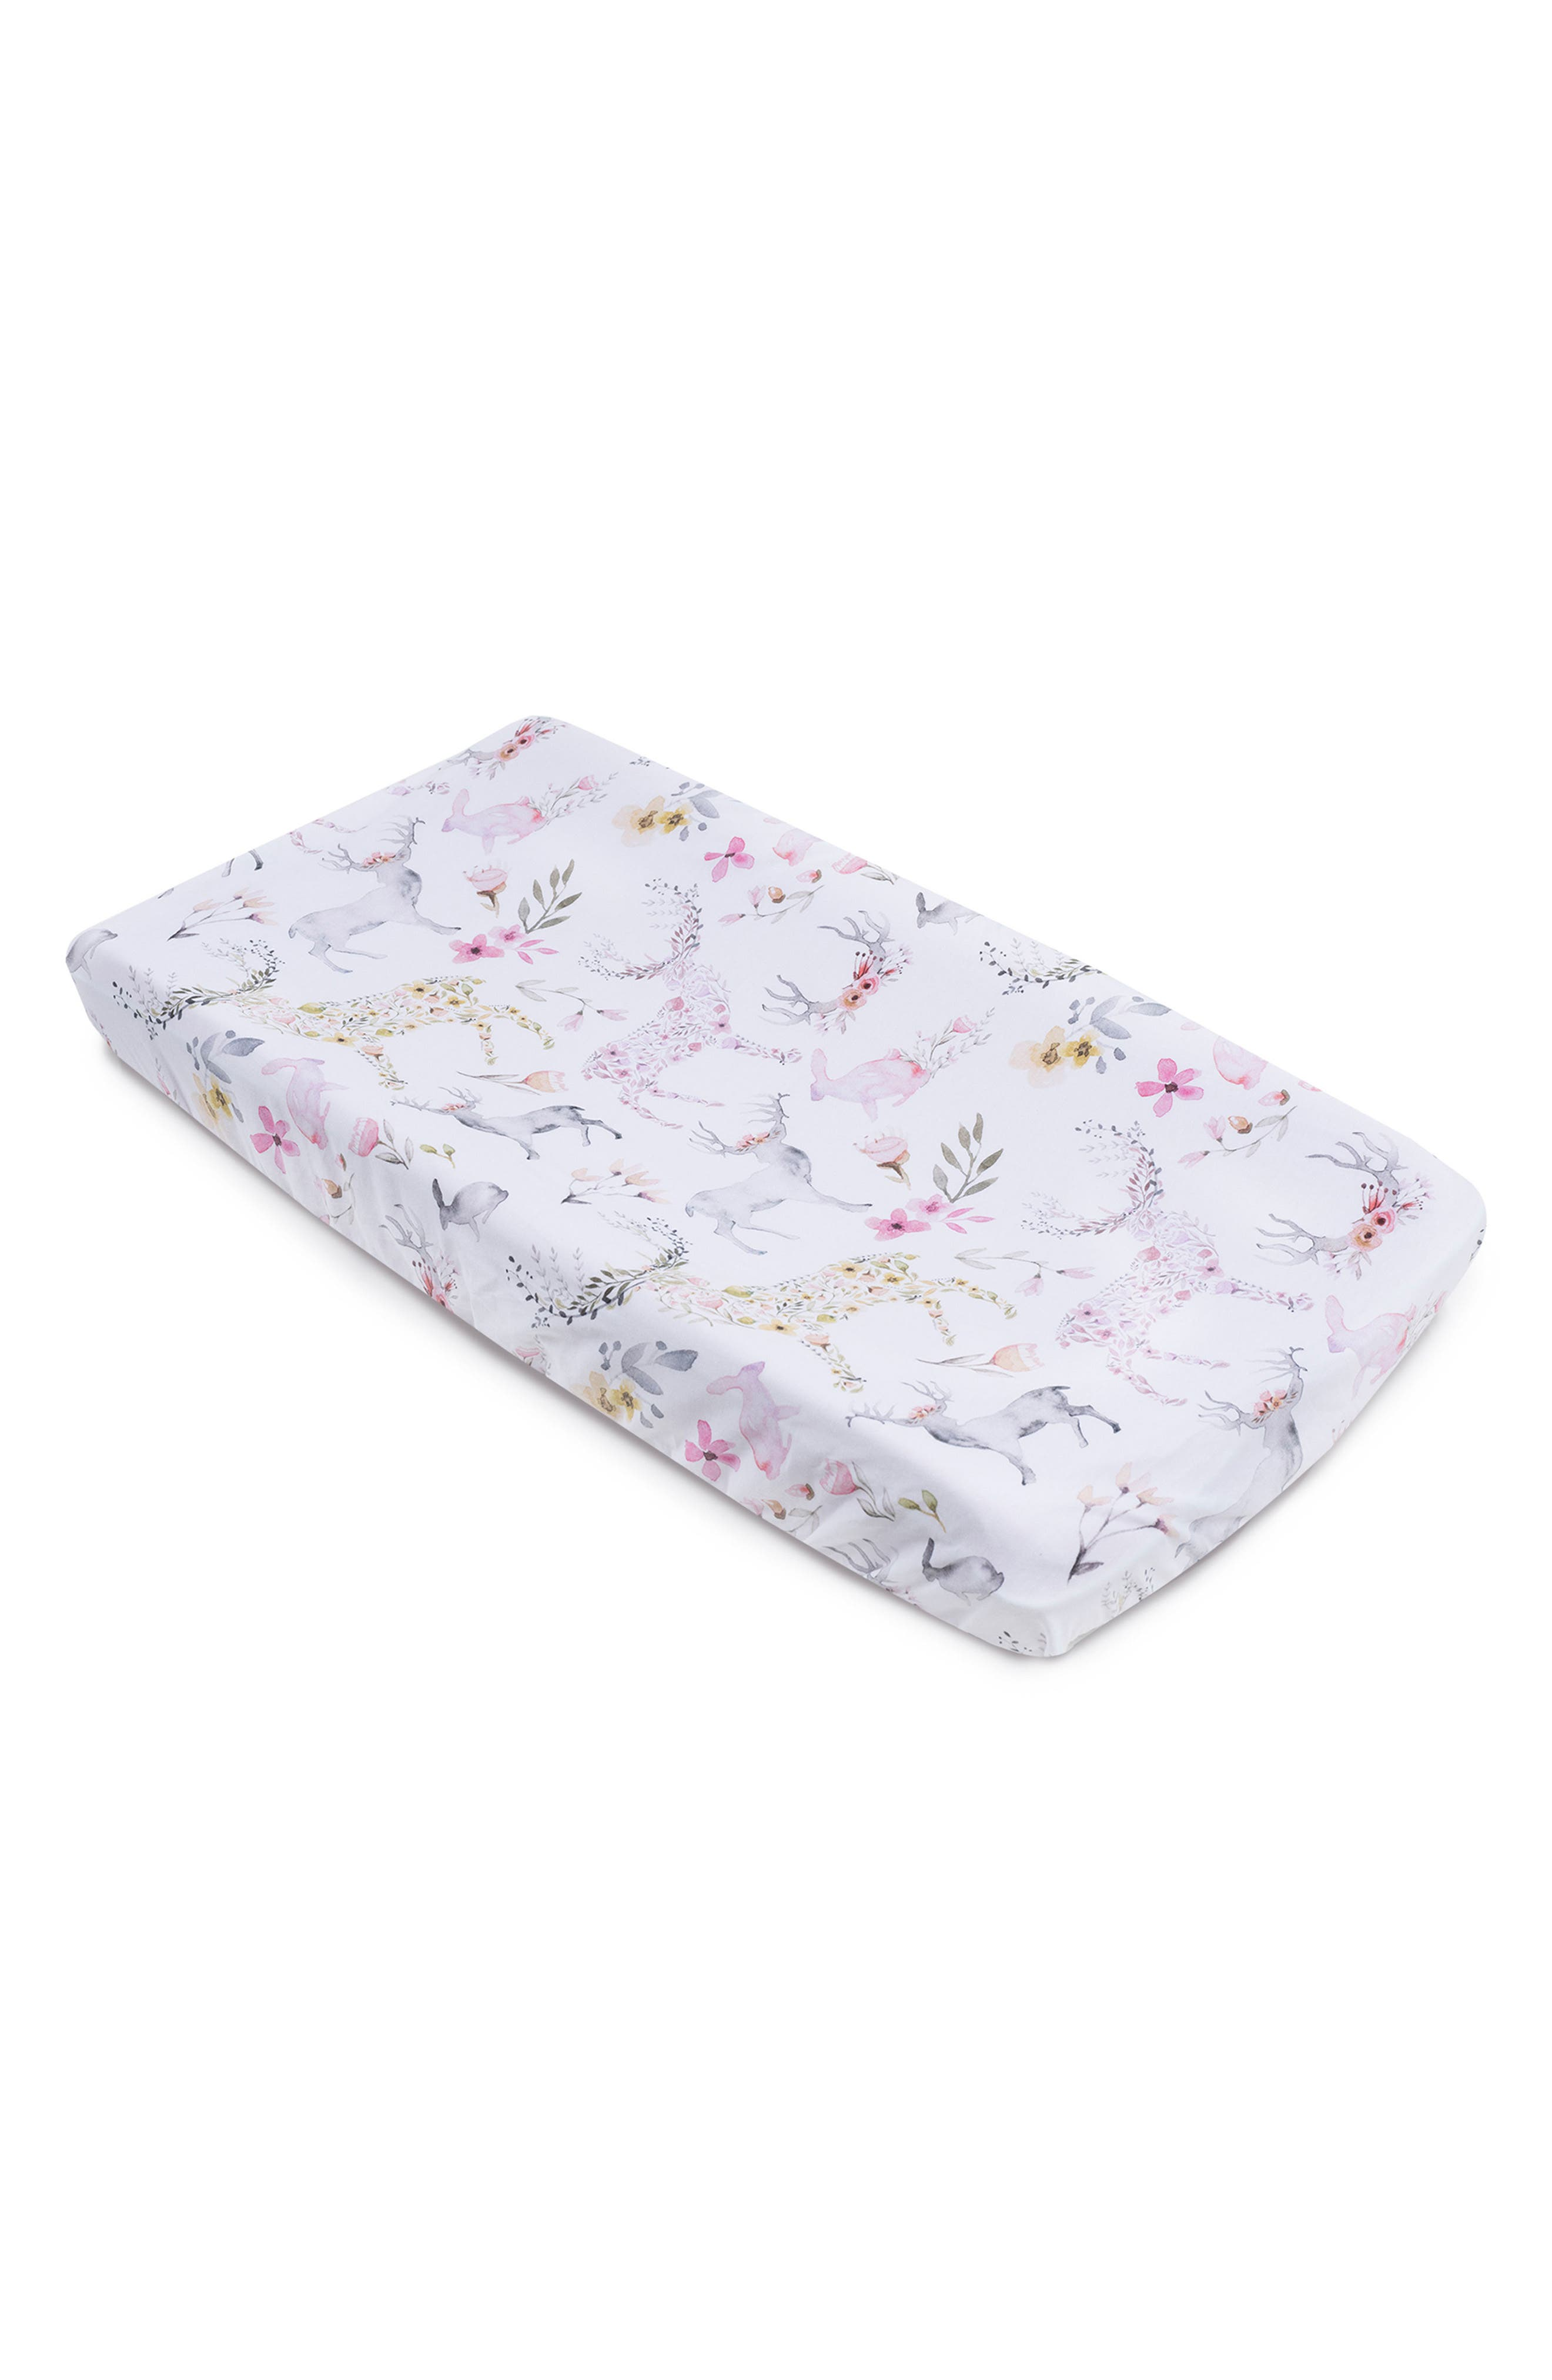 Fawn Print 2-Pack Changing Pad Covers,                             Alternate thumbnail 2, color,                             Fawn